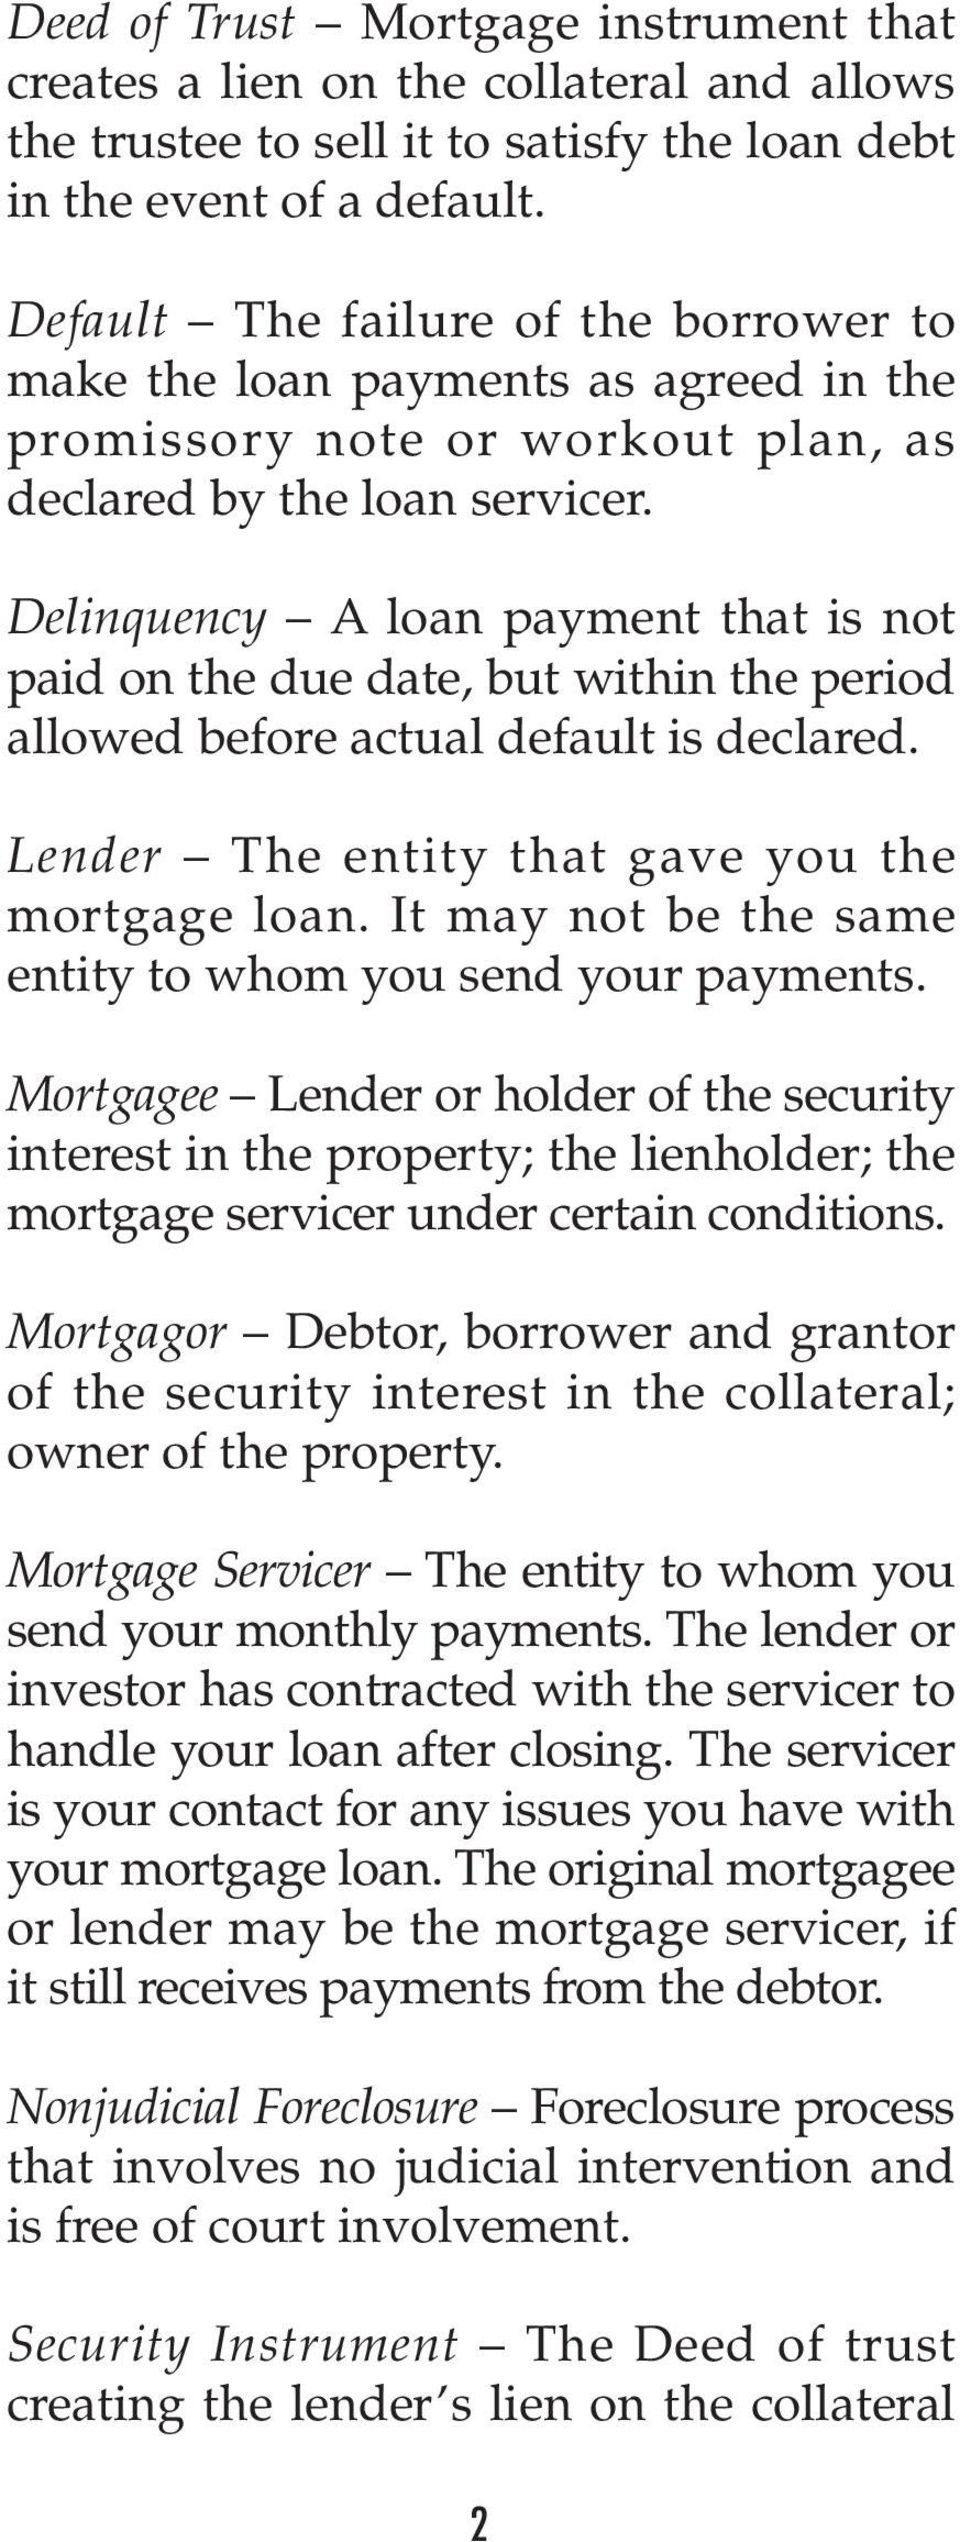 Delinquency A loan payment that is not paid on the due date, but within the period allowed before actual default is declared. Lender The entity that gave you the mortgage loan.